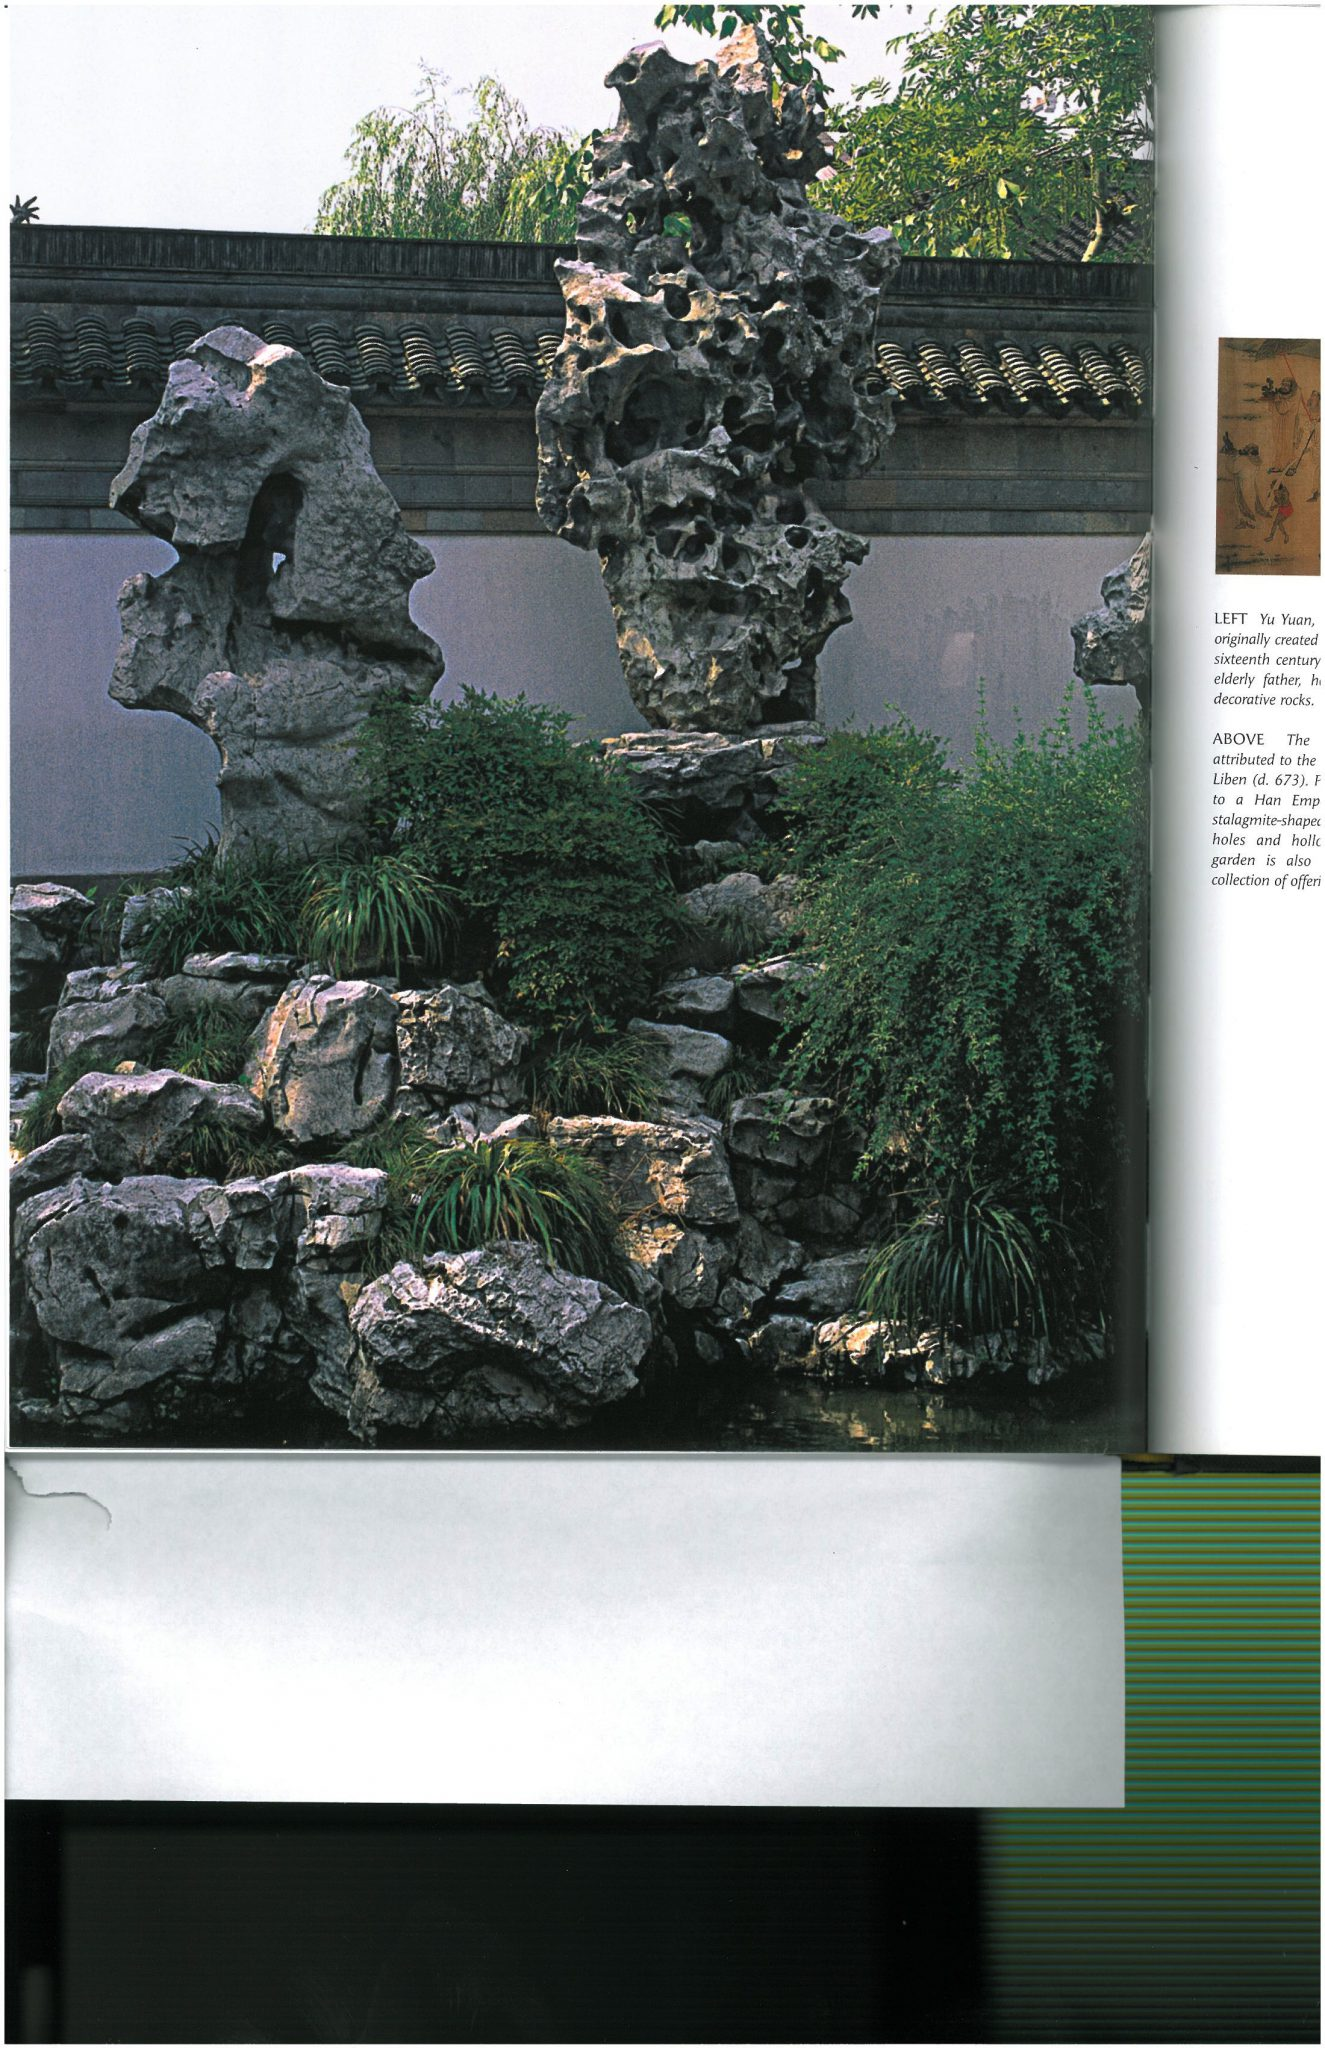 Typical decorative use of large rocks; these in China's Yu Garden, which was built in the 16th century. Image courtesy of THE CHINESE GARDEN, by Maggie Keswick.